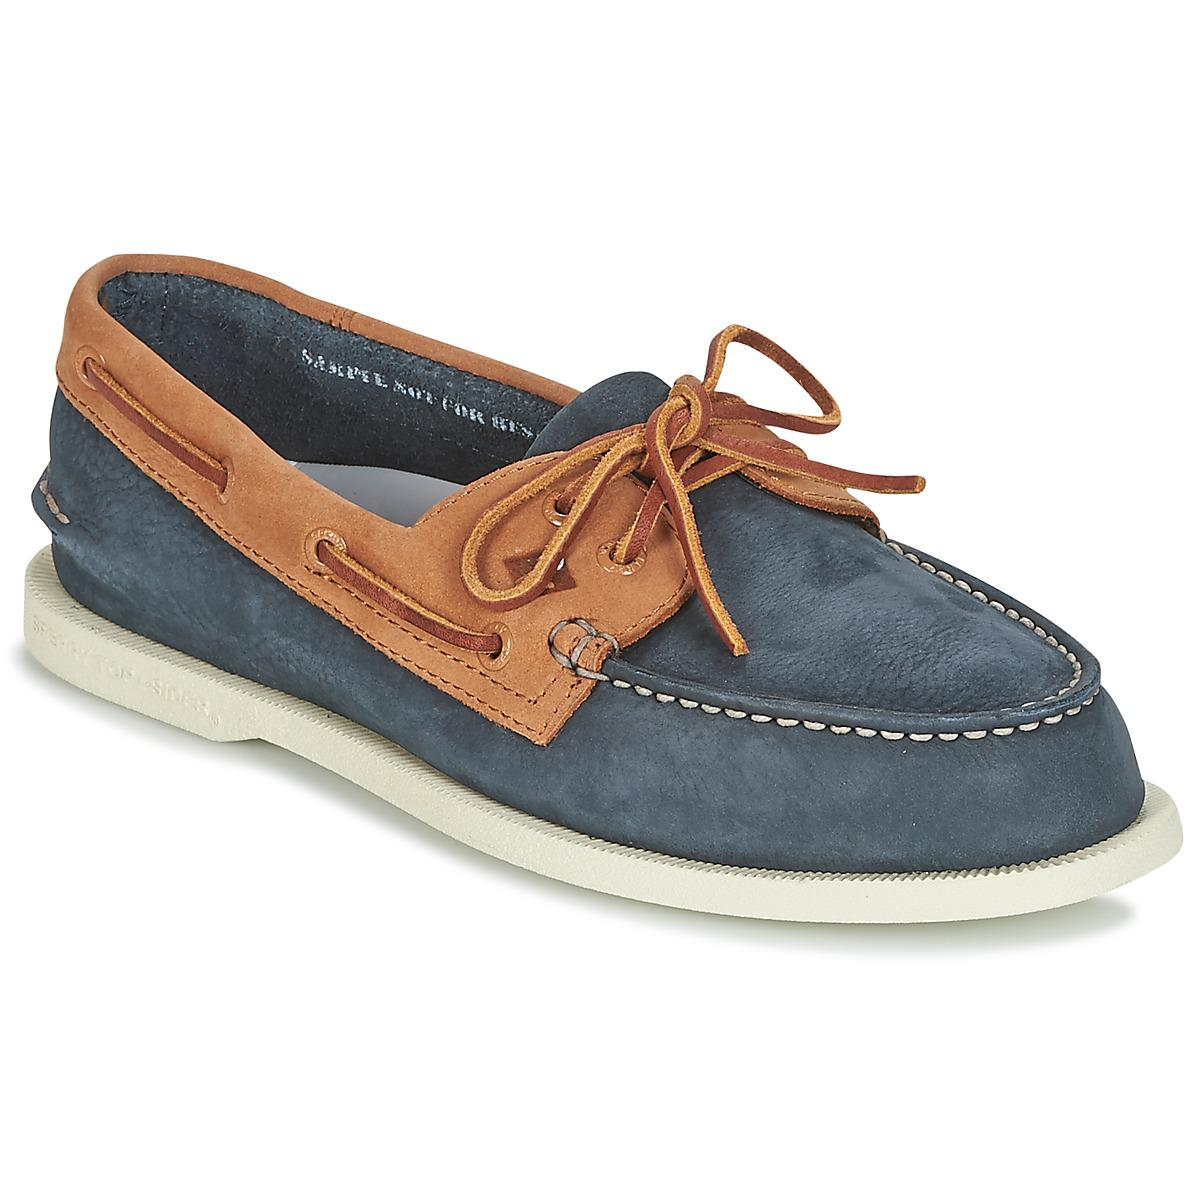 Sperry Top-Sider A o 2-eye Washable Men s Boat Shoes In Blue in Blue ... 62d976c0b45